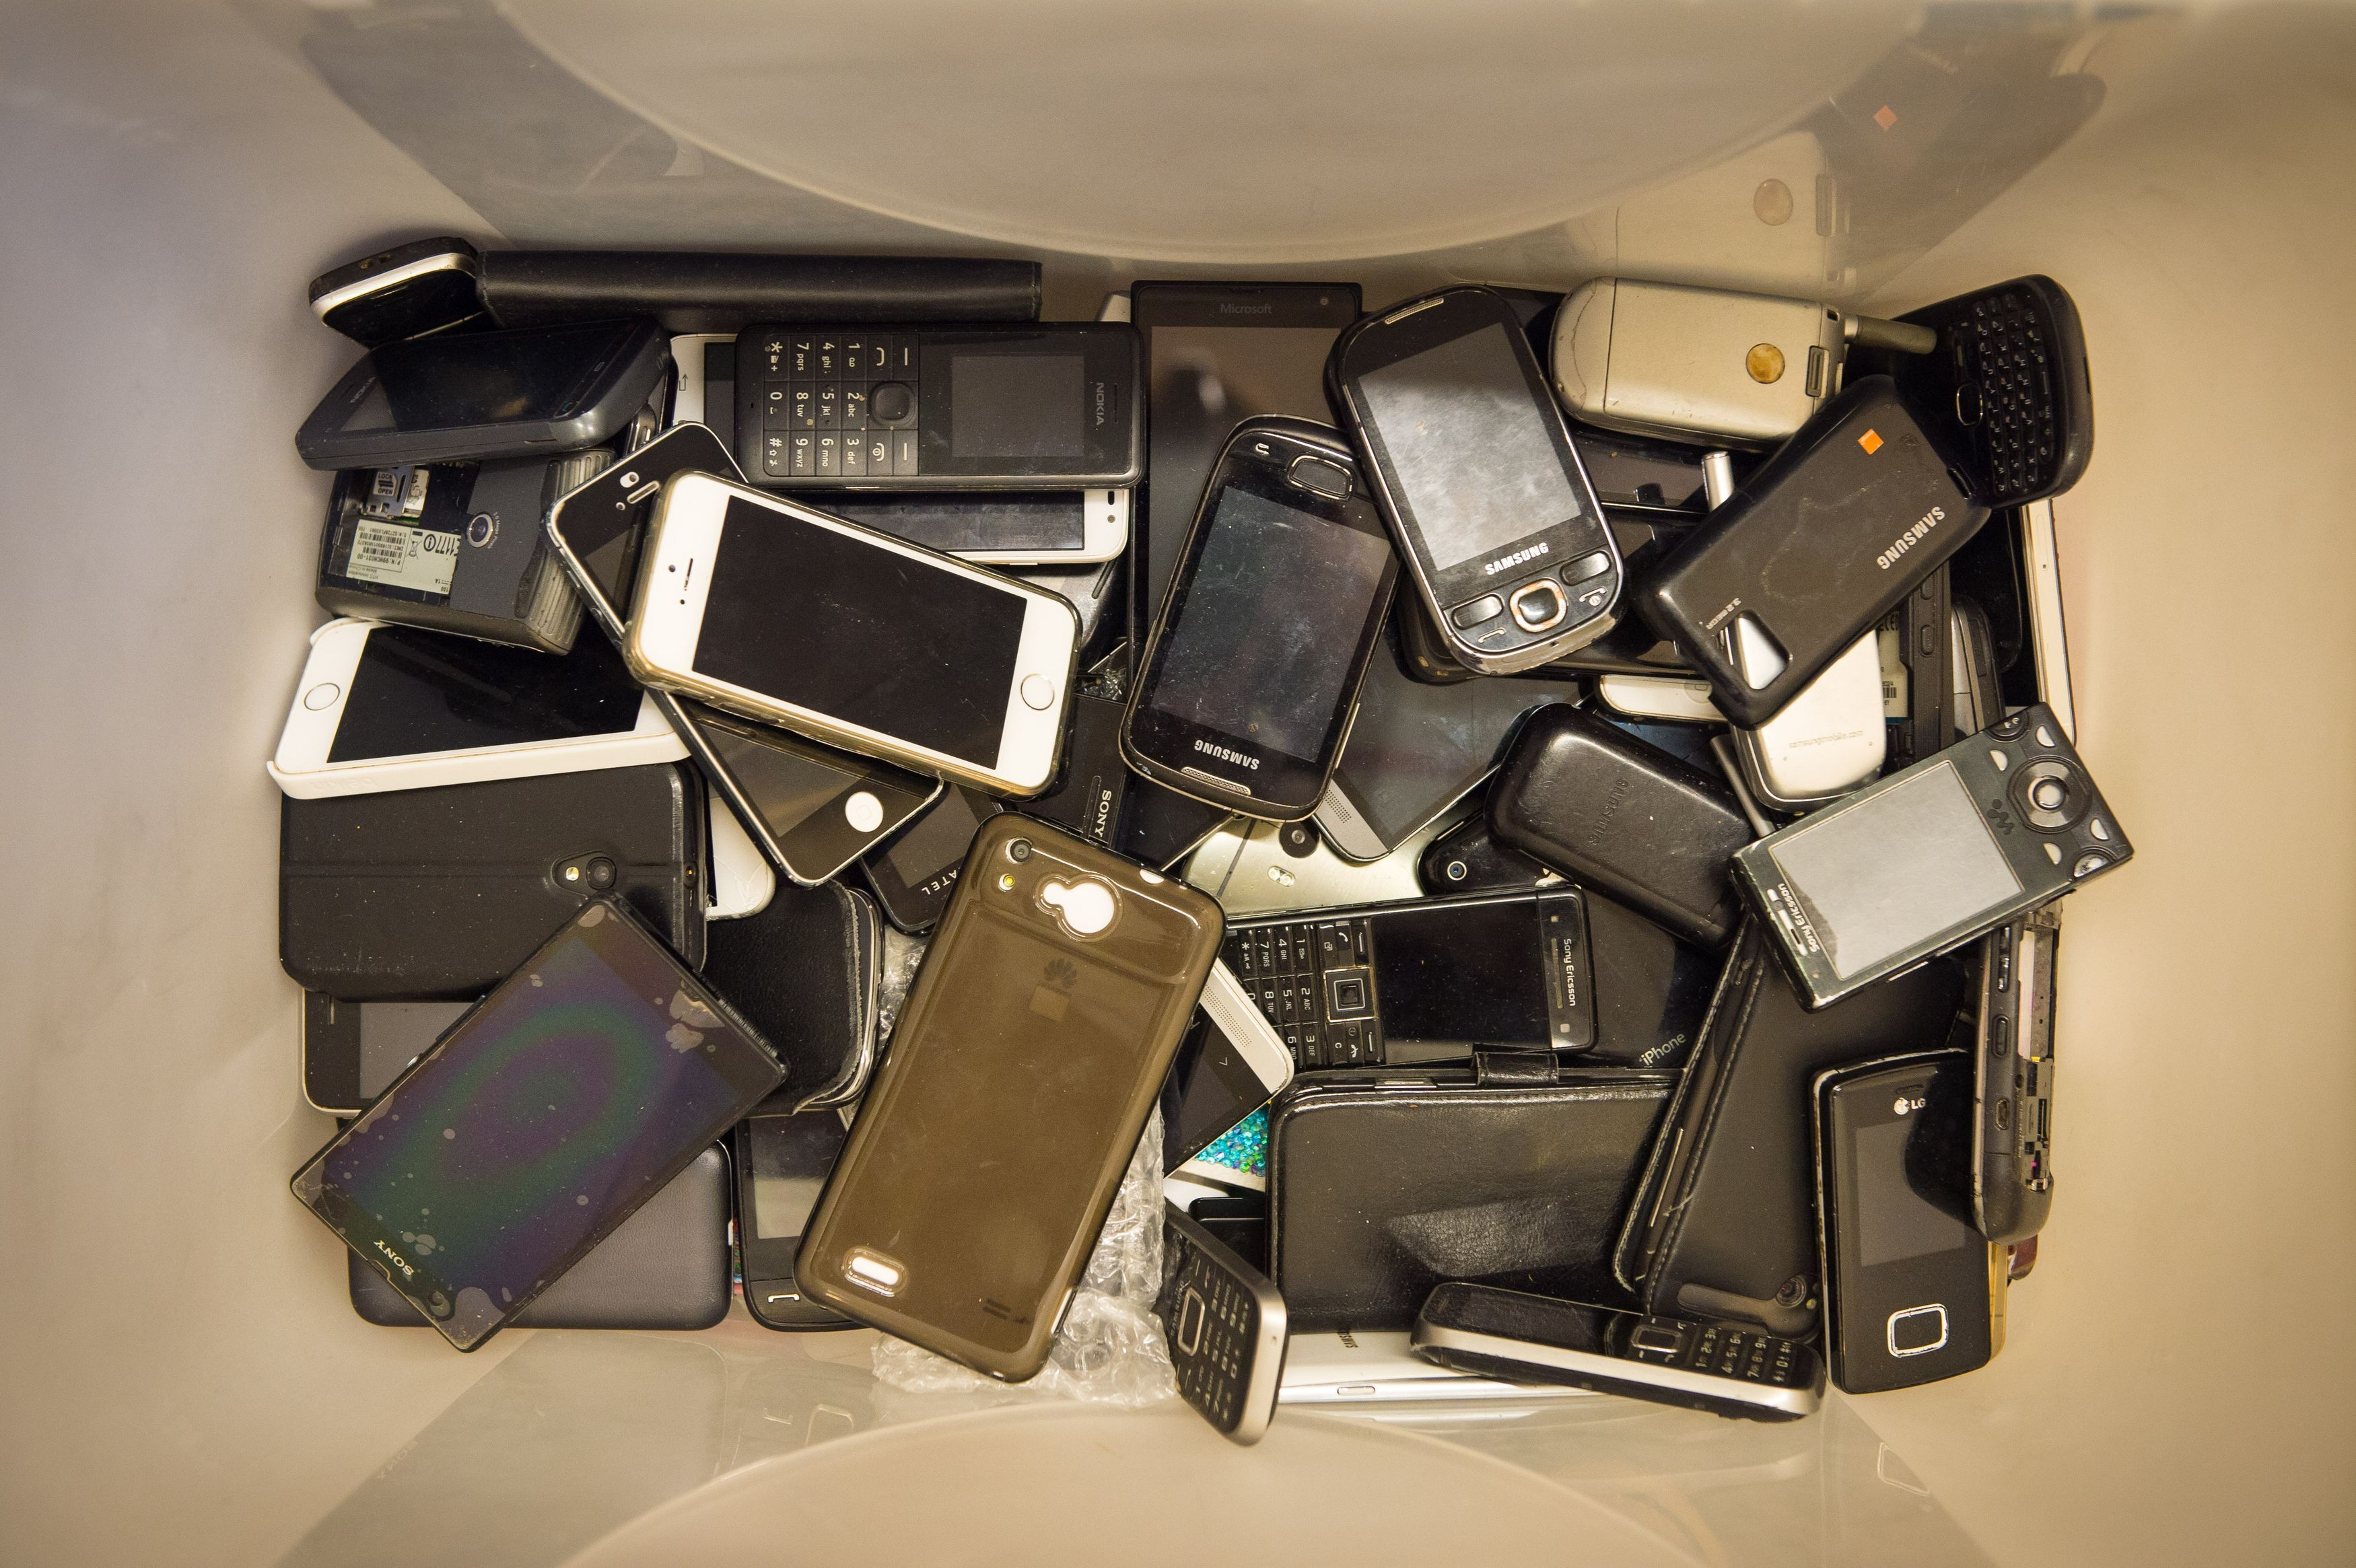 Up to 40 million gadgets unused in UK homes